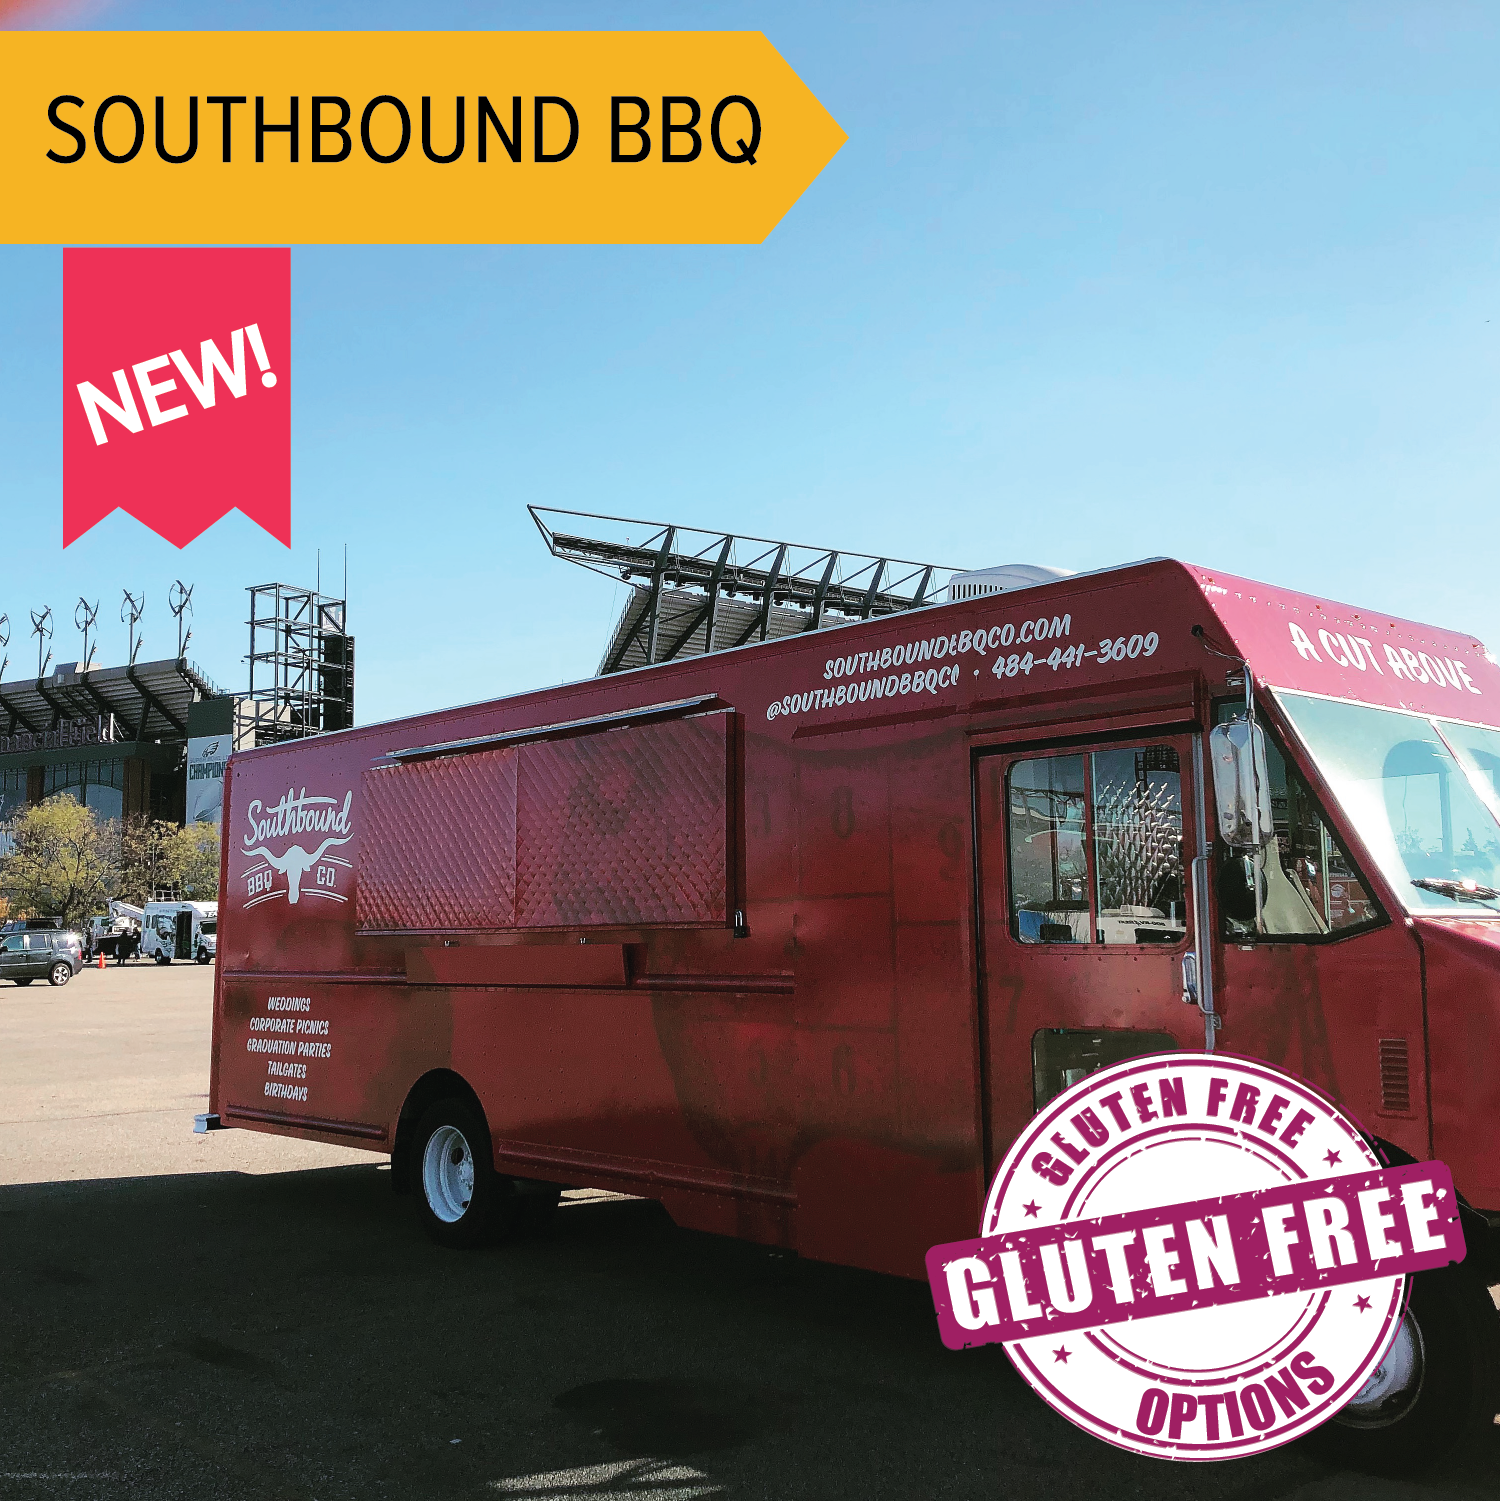 Southbound BBQ   Authentic southern barbecue served fresh, from pit to plate - Carolina style BBQ with sides